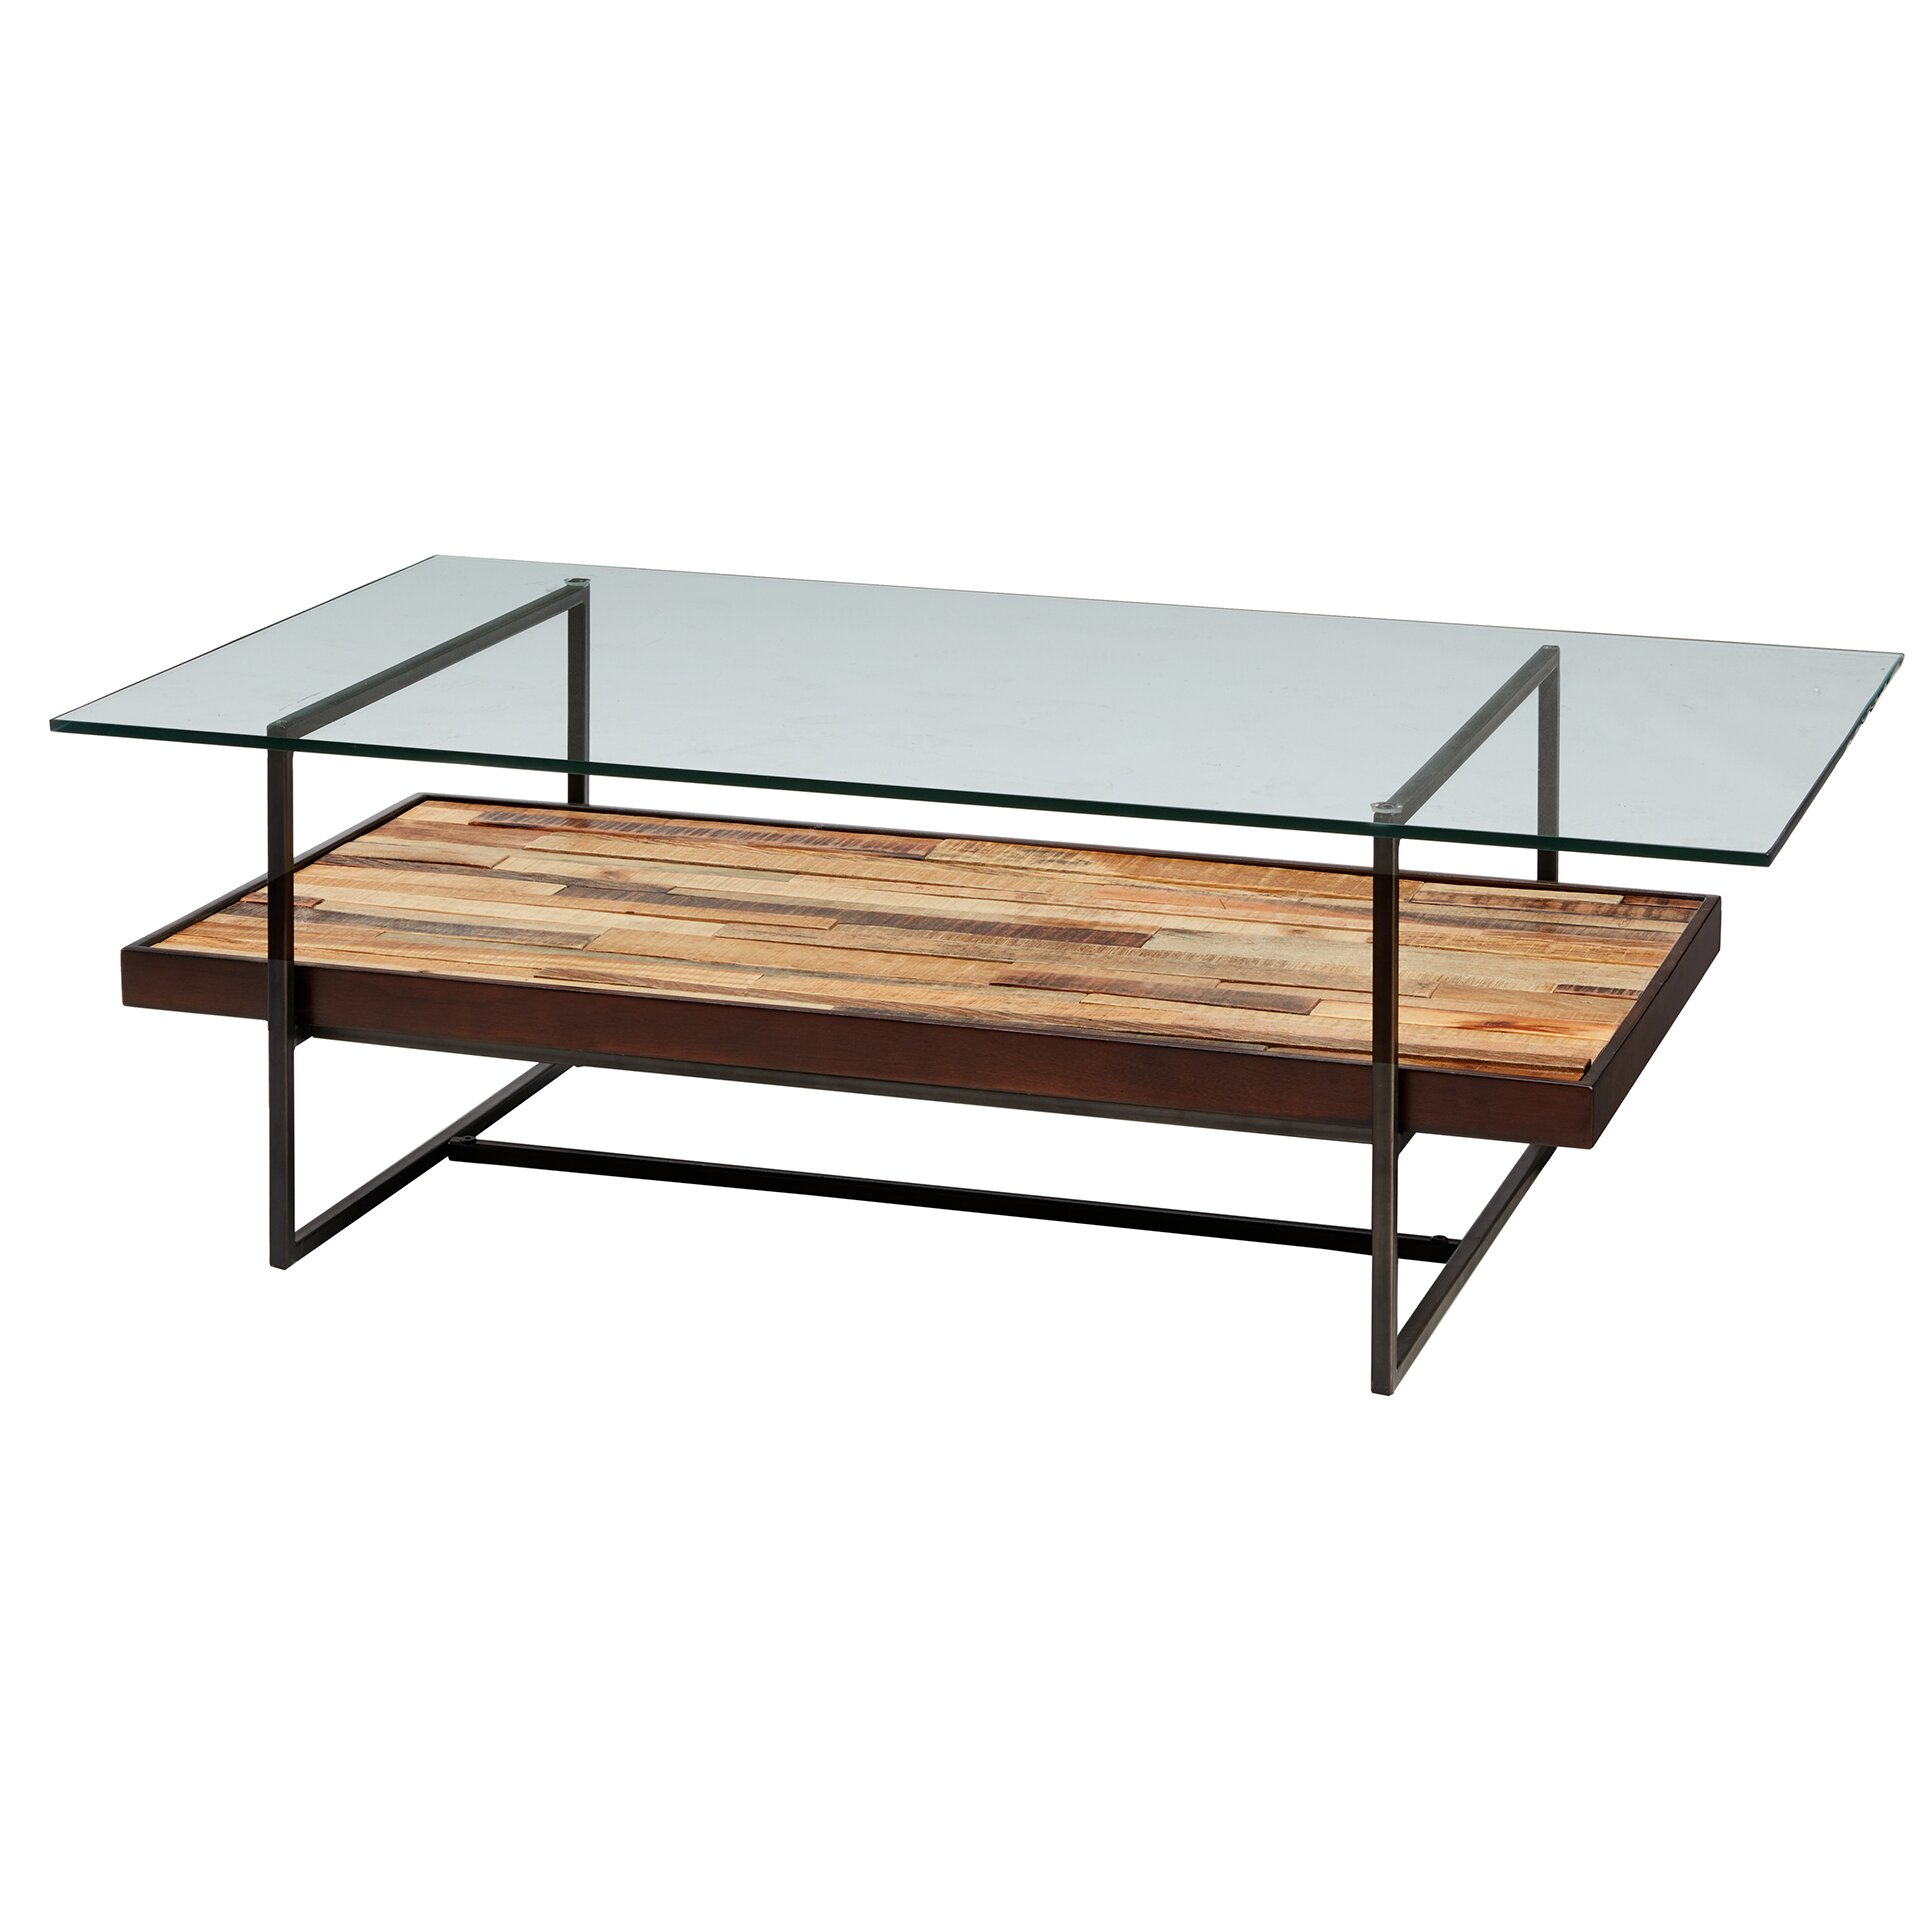 Tavarua coffee table with magazine rack reviews allmodern for Regulation 85 table a